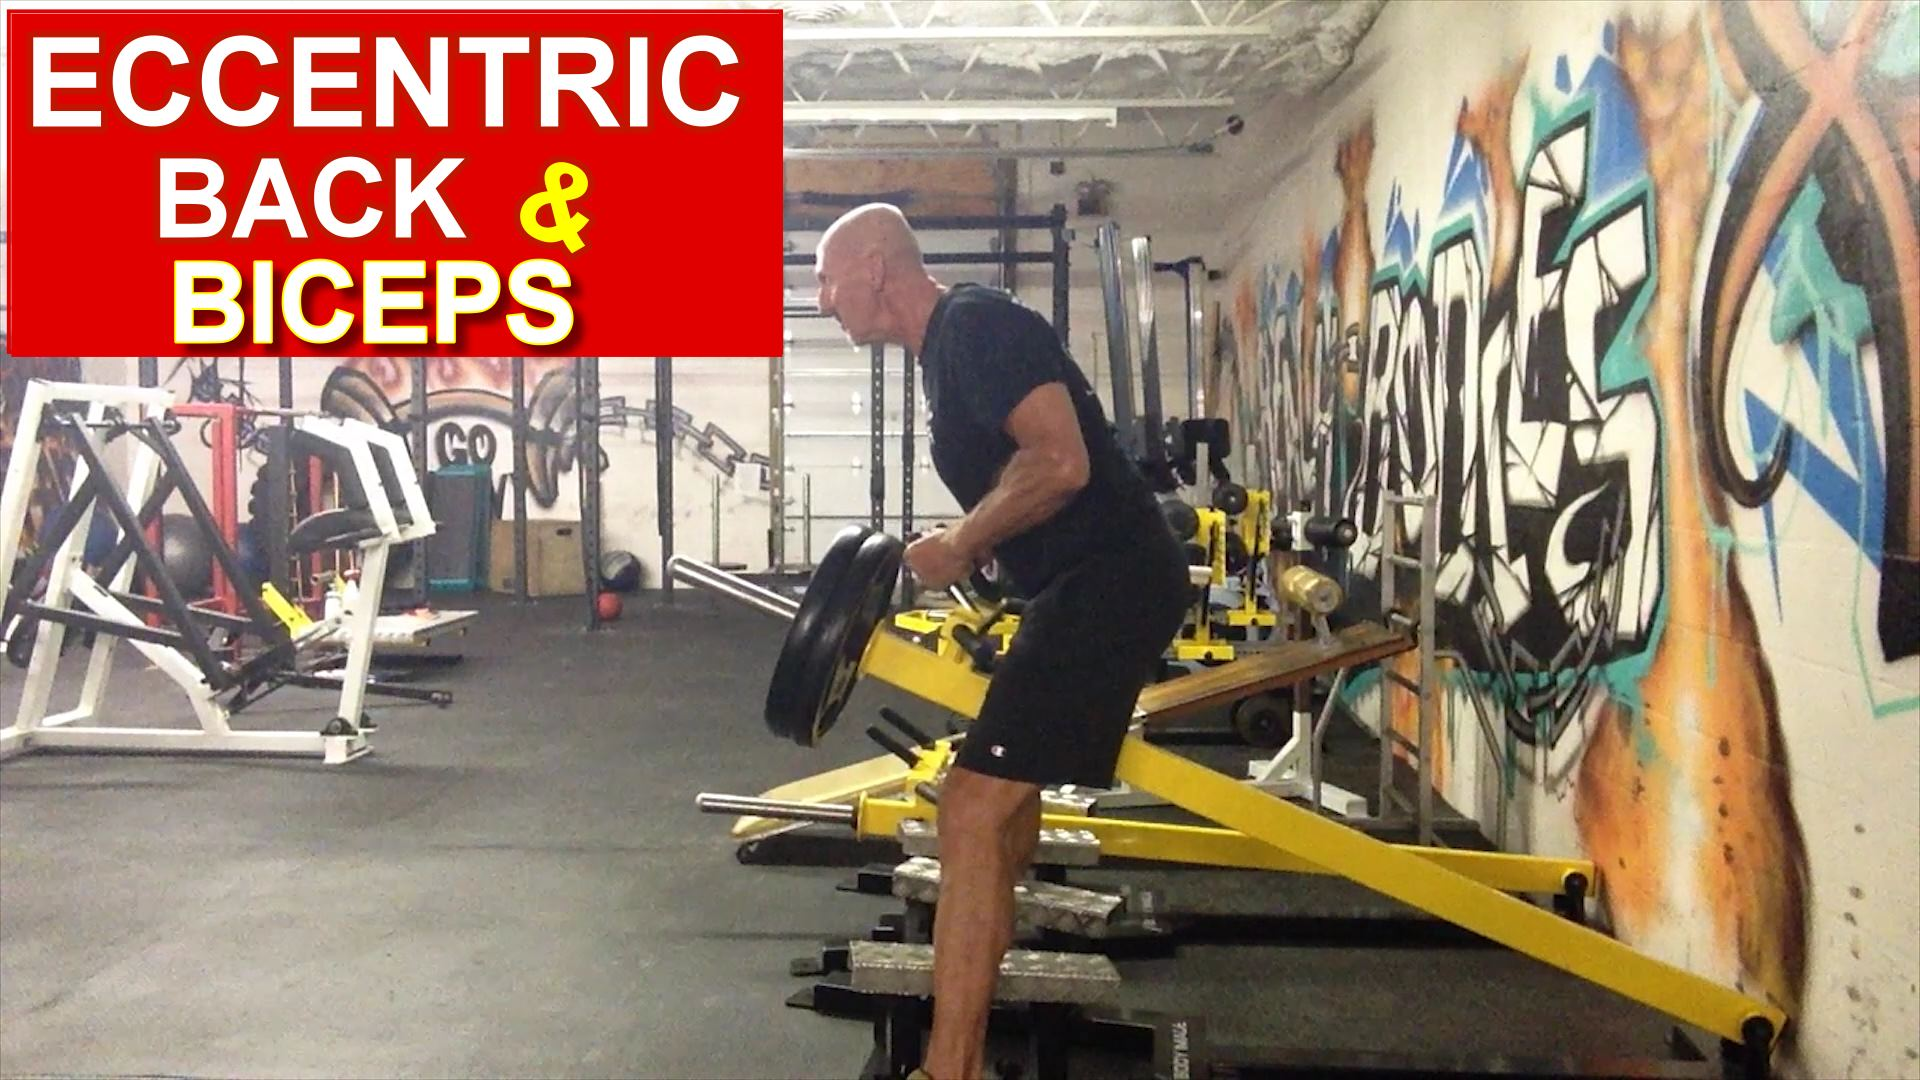 eccentric back and biceps exercises big muscle break down